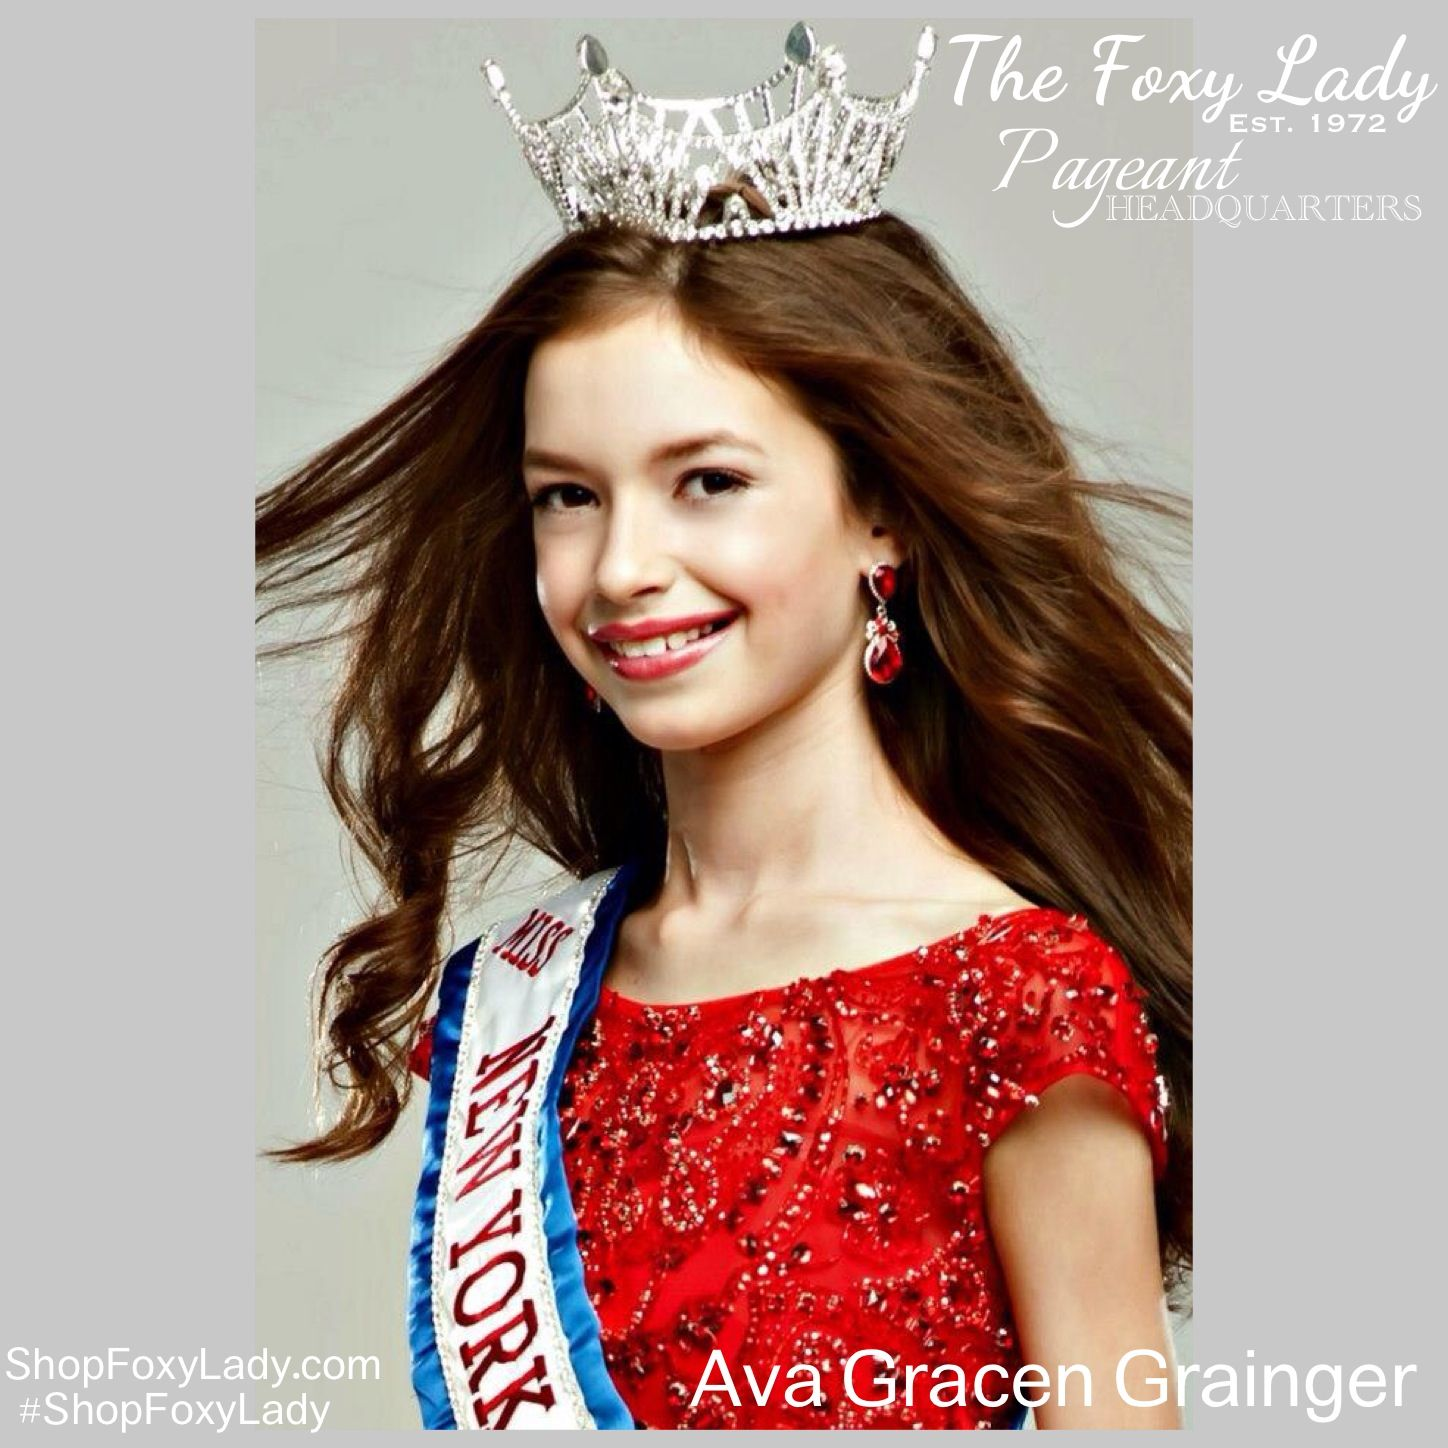 Miss New York Junior High School America, Ava Gracen Grainger, is a long time Foxy Lady and oh how we love this incredibly gorgeous, fun and intelligent girl, wise beyond her years!!! We are SO PROUD of you!!!! Xoxo #ShopFoxyLady #PageantHeadquarters #JonathanCarterPhotography